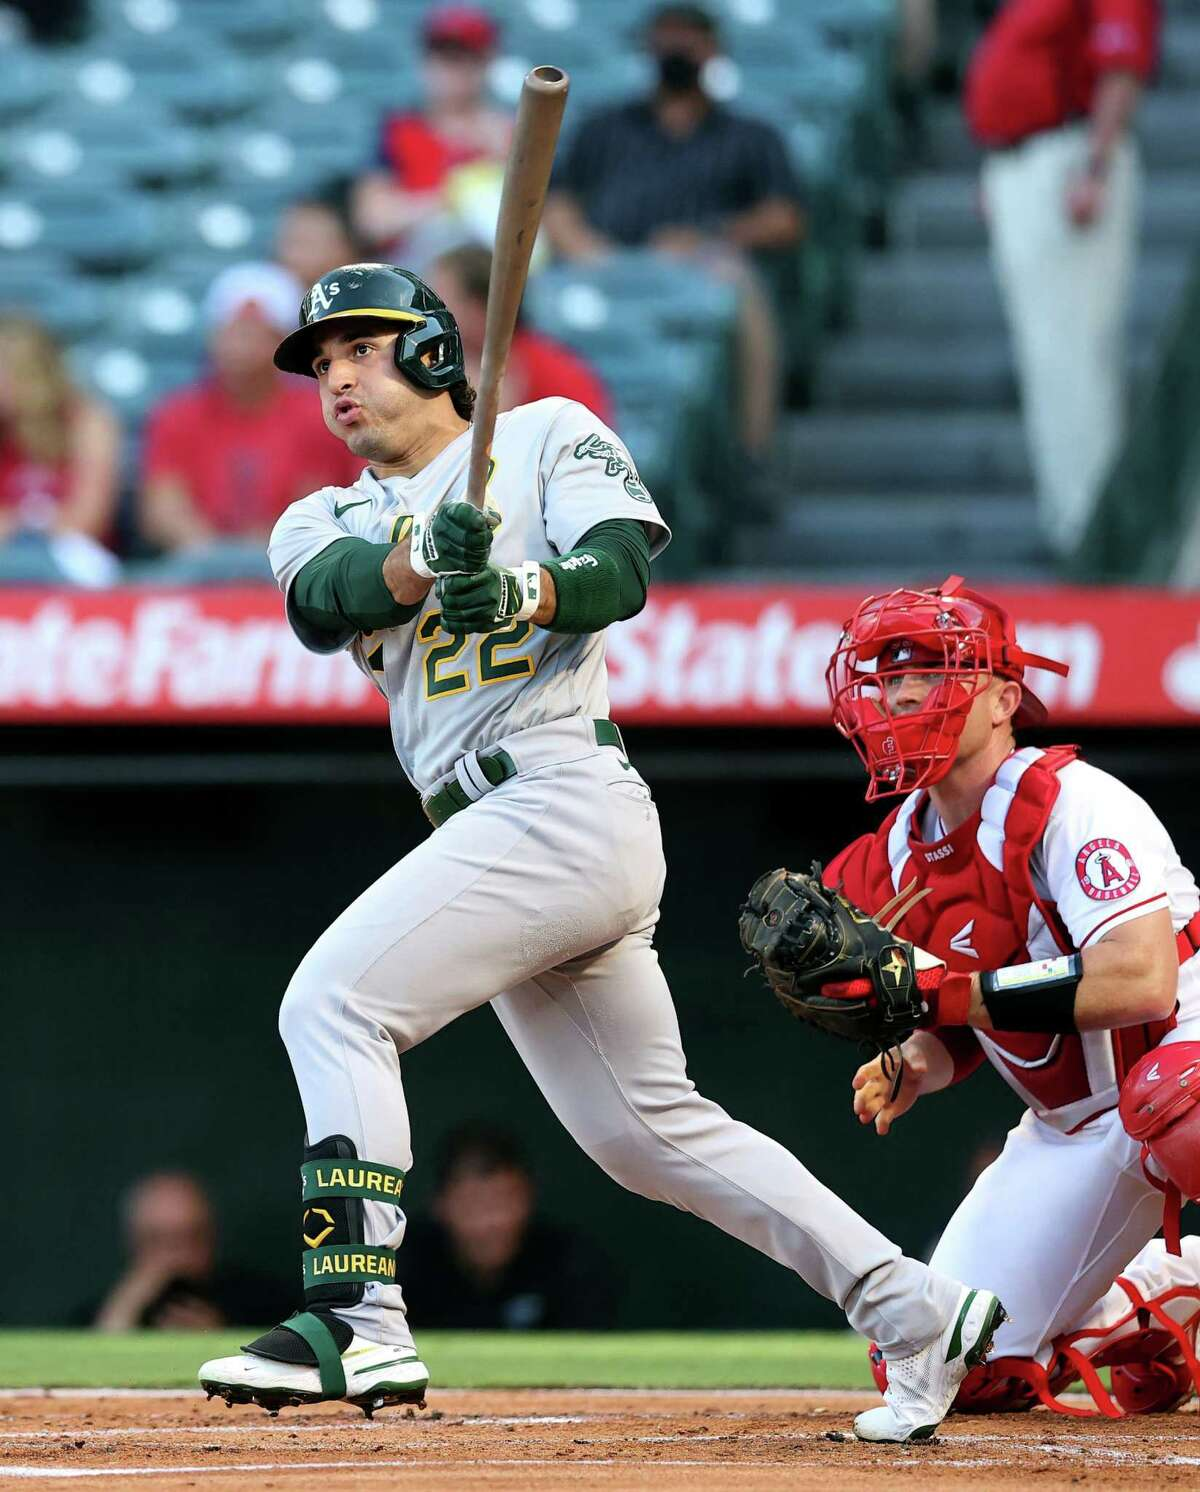 ANAHEIM, CALIFORNIA - JULY 29: Ramon Laureano #22 of the Oakland Athletics hits a double against the Los Angeles Angels in the first inning at Angel Stadium of Anaheim on July 29, 2021 in Anaheim, California. (Photo by Ronald Martinez/Getty Images)